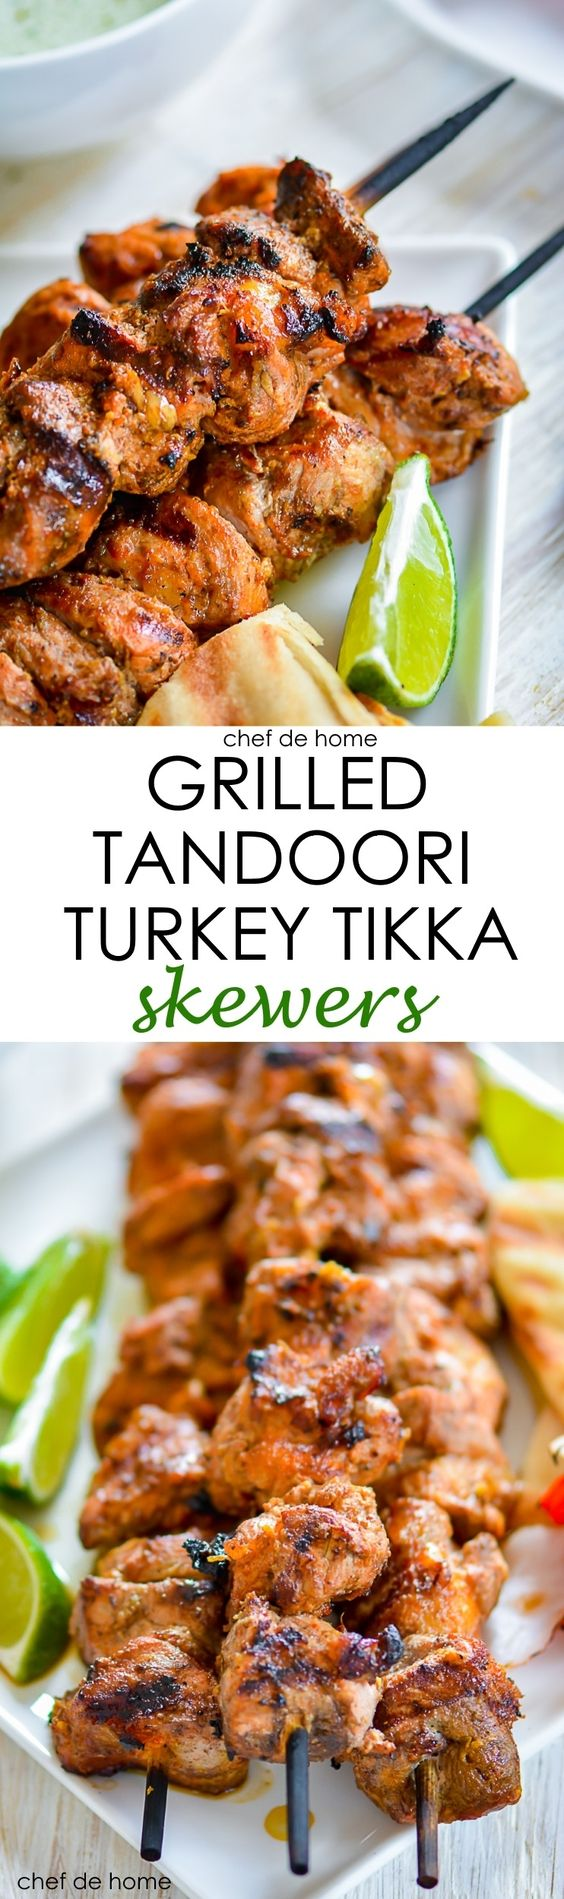 Turkey, Skewers and Protein on Pinterest